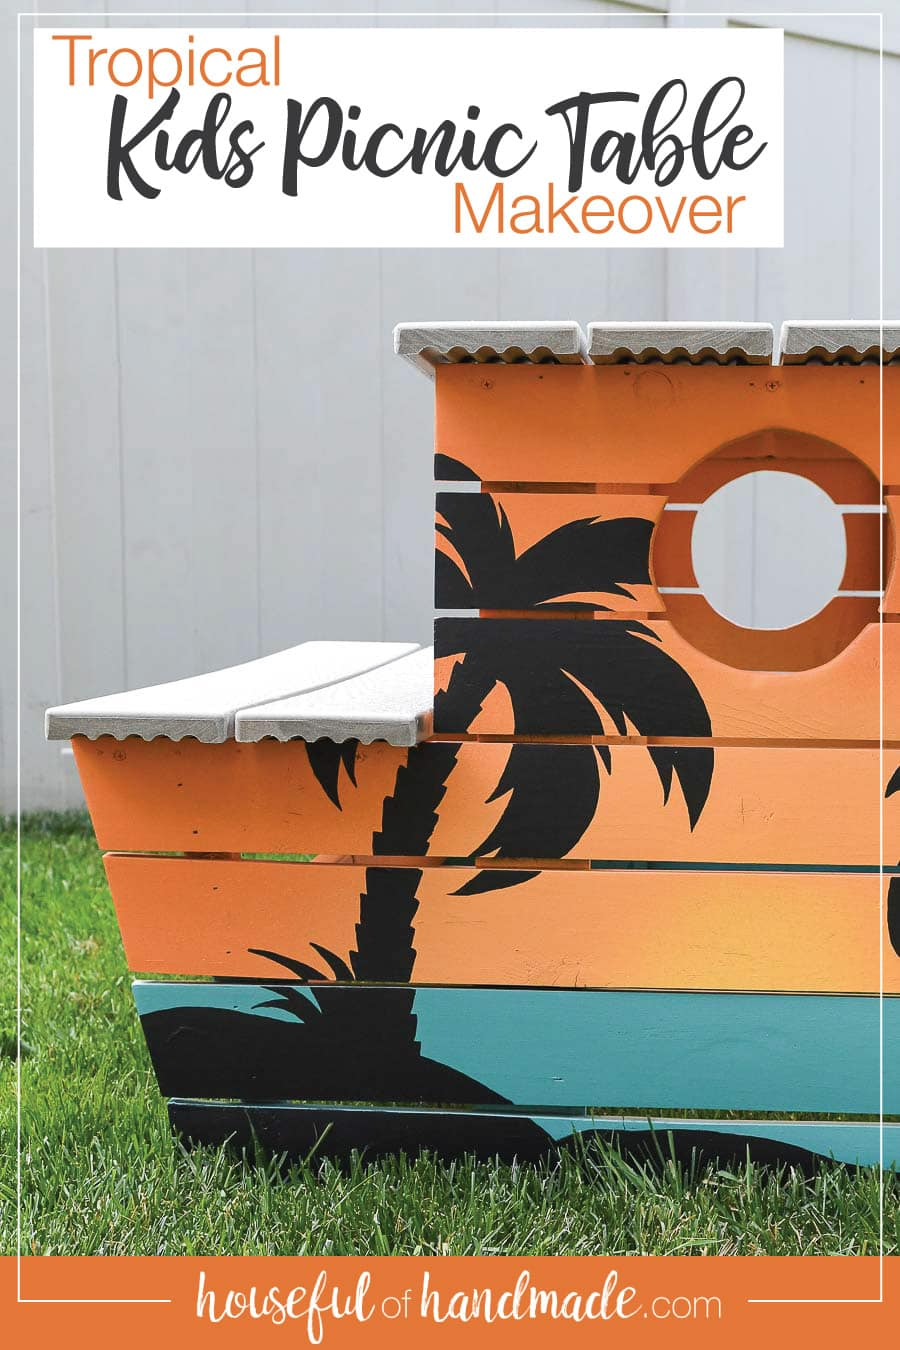 Picture of the tropical painted picnic table with words on it describing it.